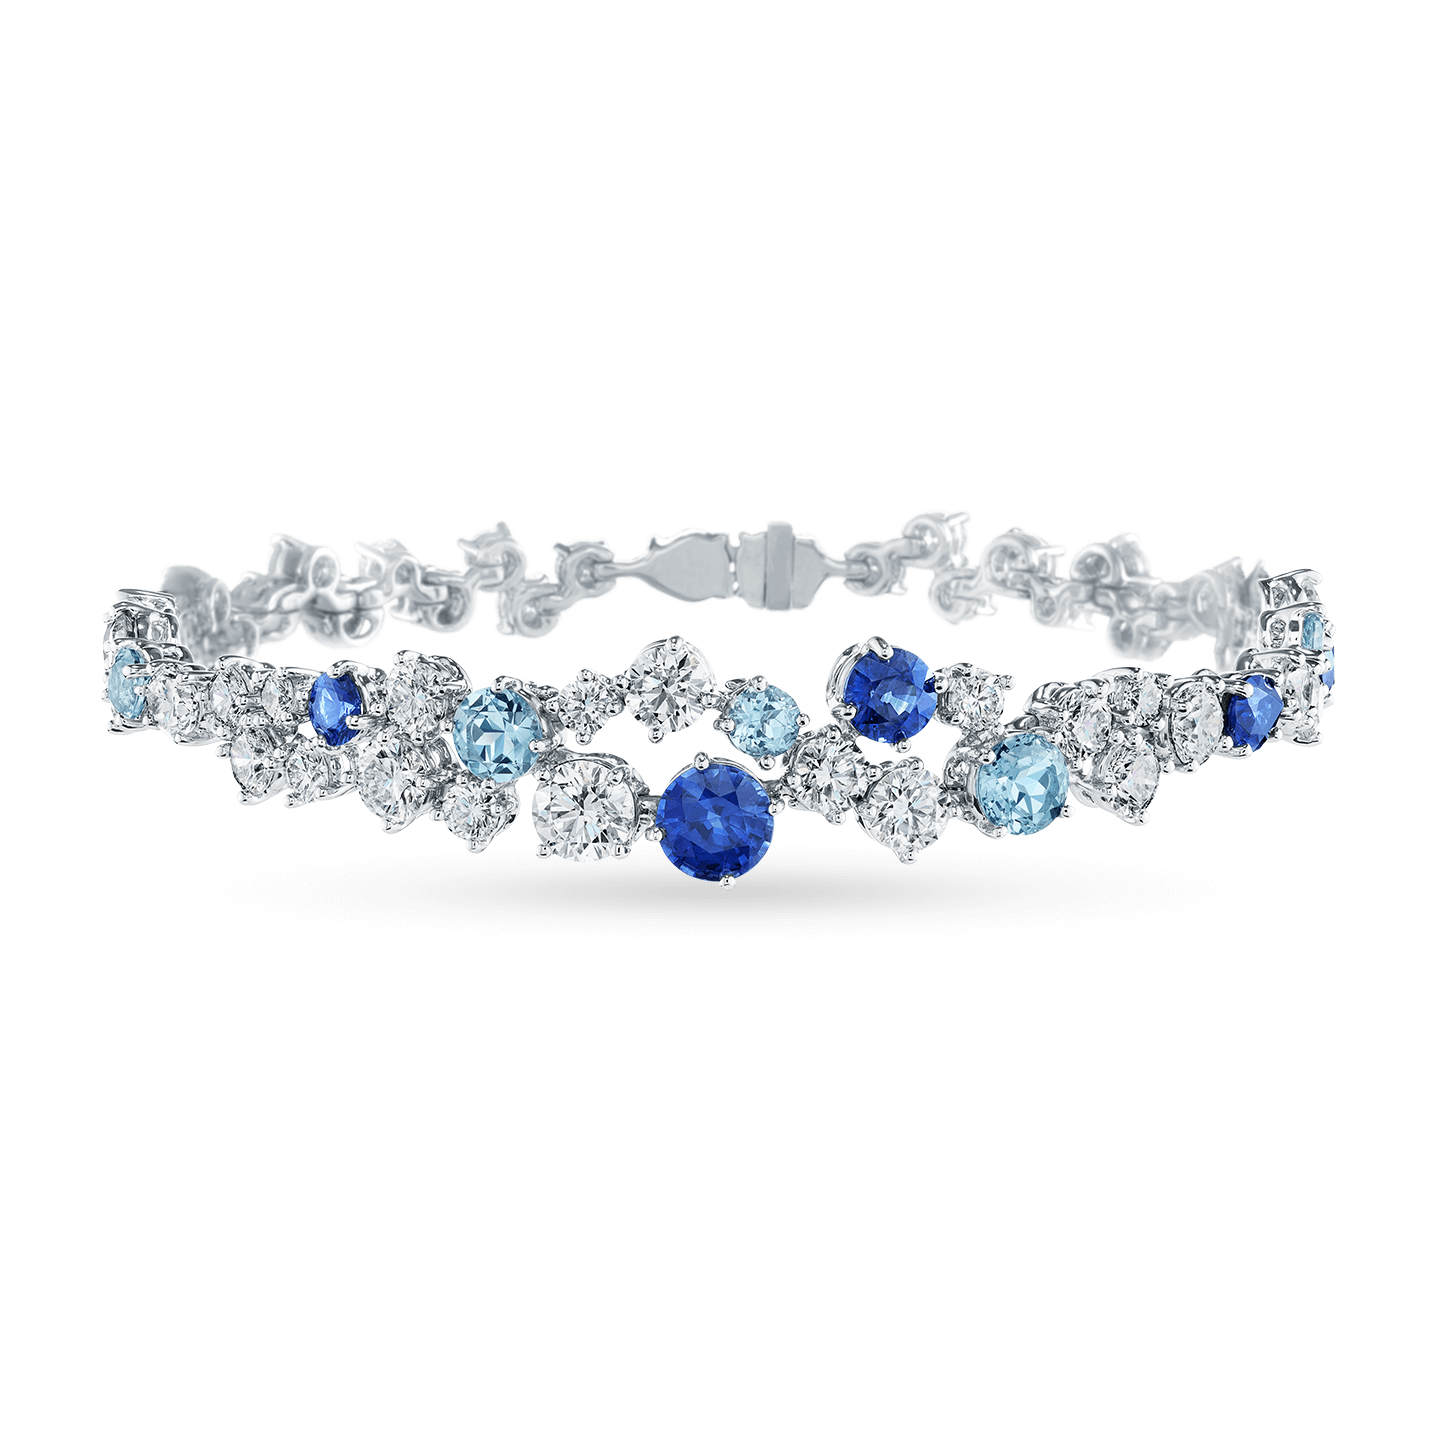 Sparkling Cluster Sapphire Aquamarine and Diamond Bracelet, Product Image 1